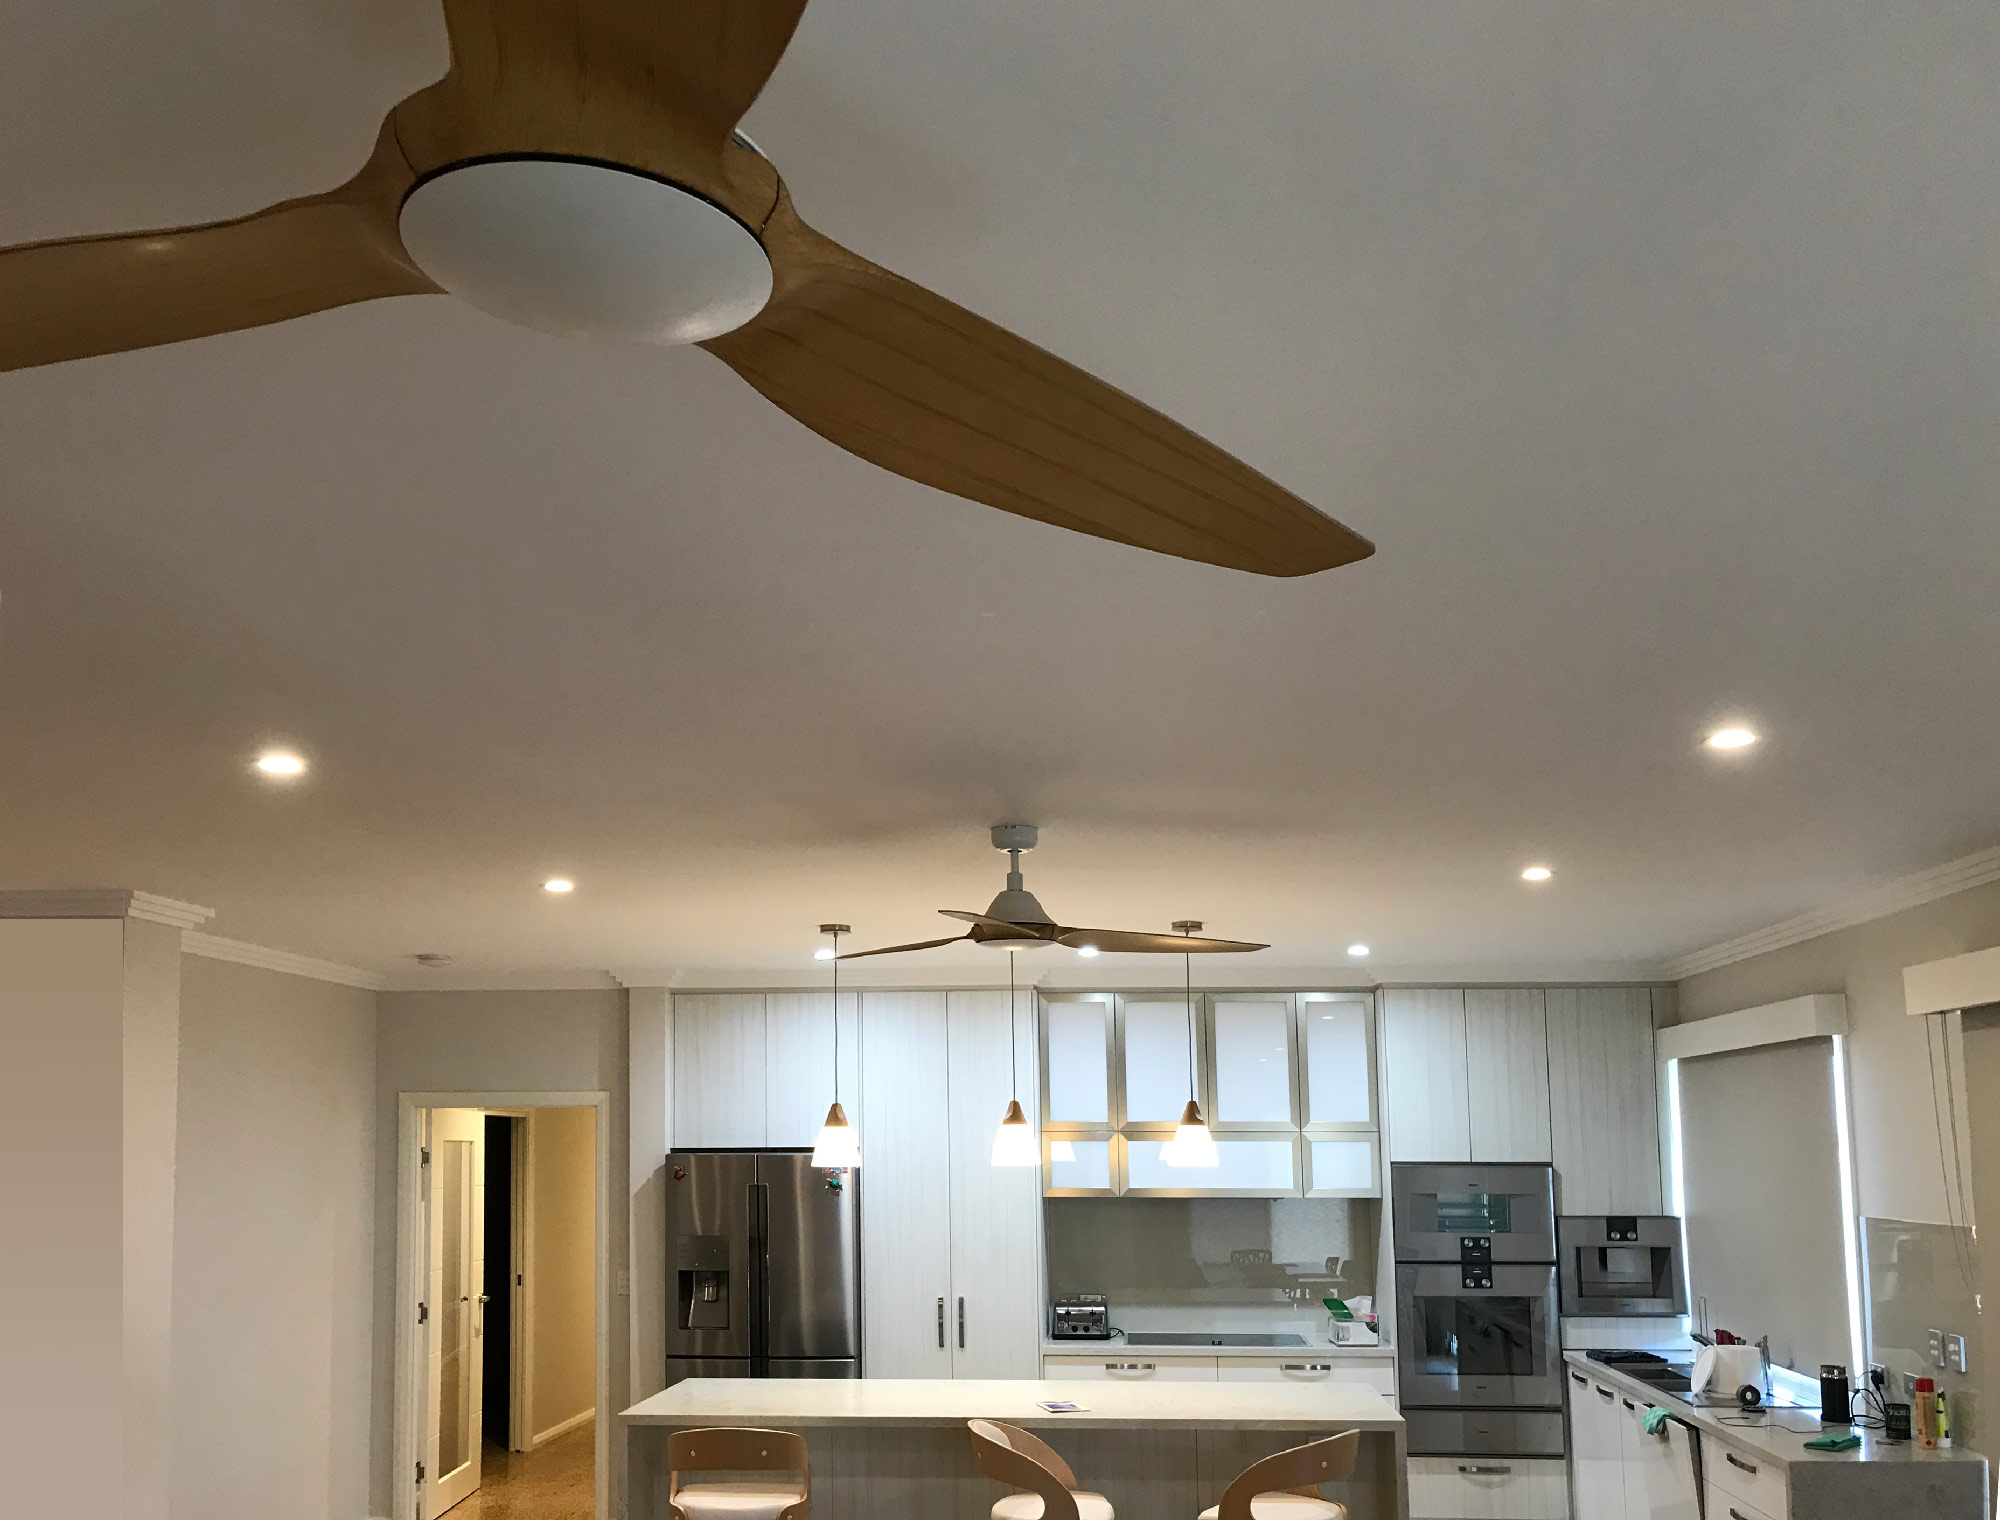 kitchen lights installed by nps electricians